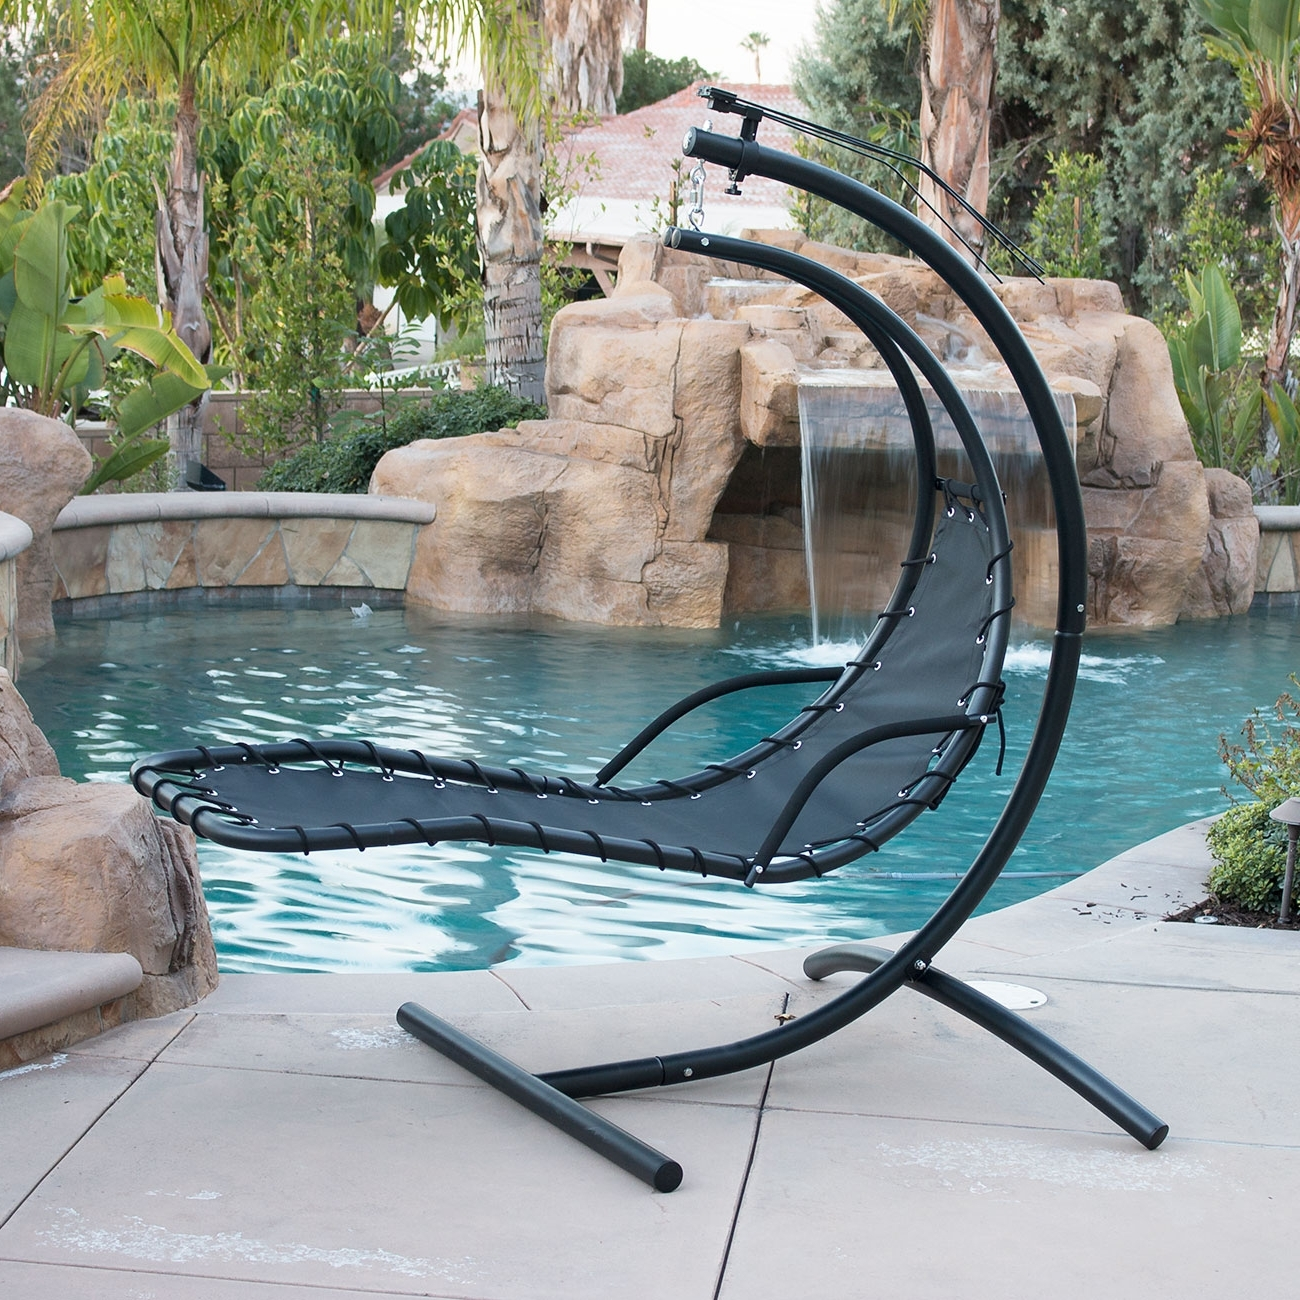 Chaise Lounge Chair With Canopy Pertaining To Well Liked Impressive On Hanging Patio Chair Hanging Chaise Lounge Chair (View 6 of 15)